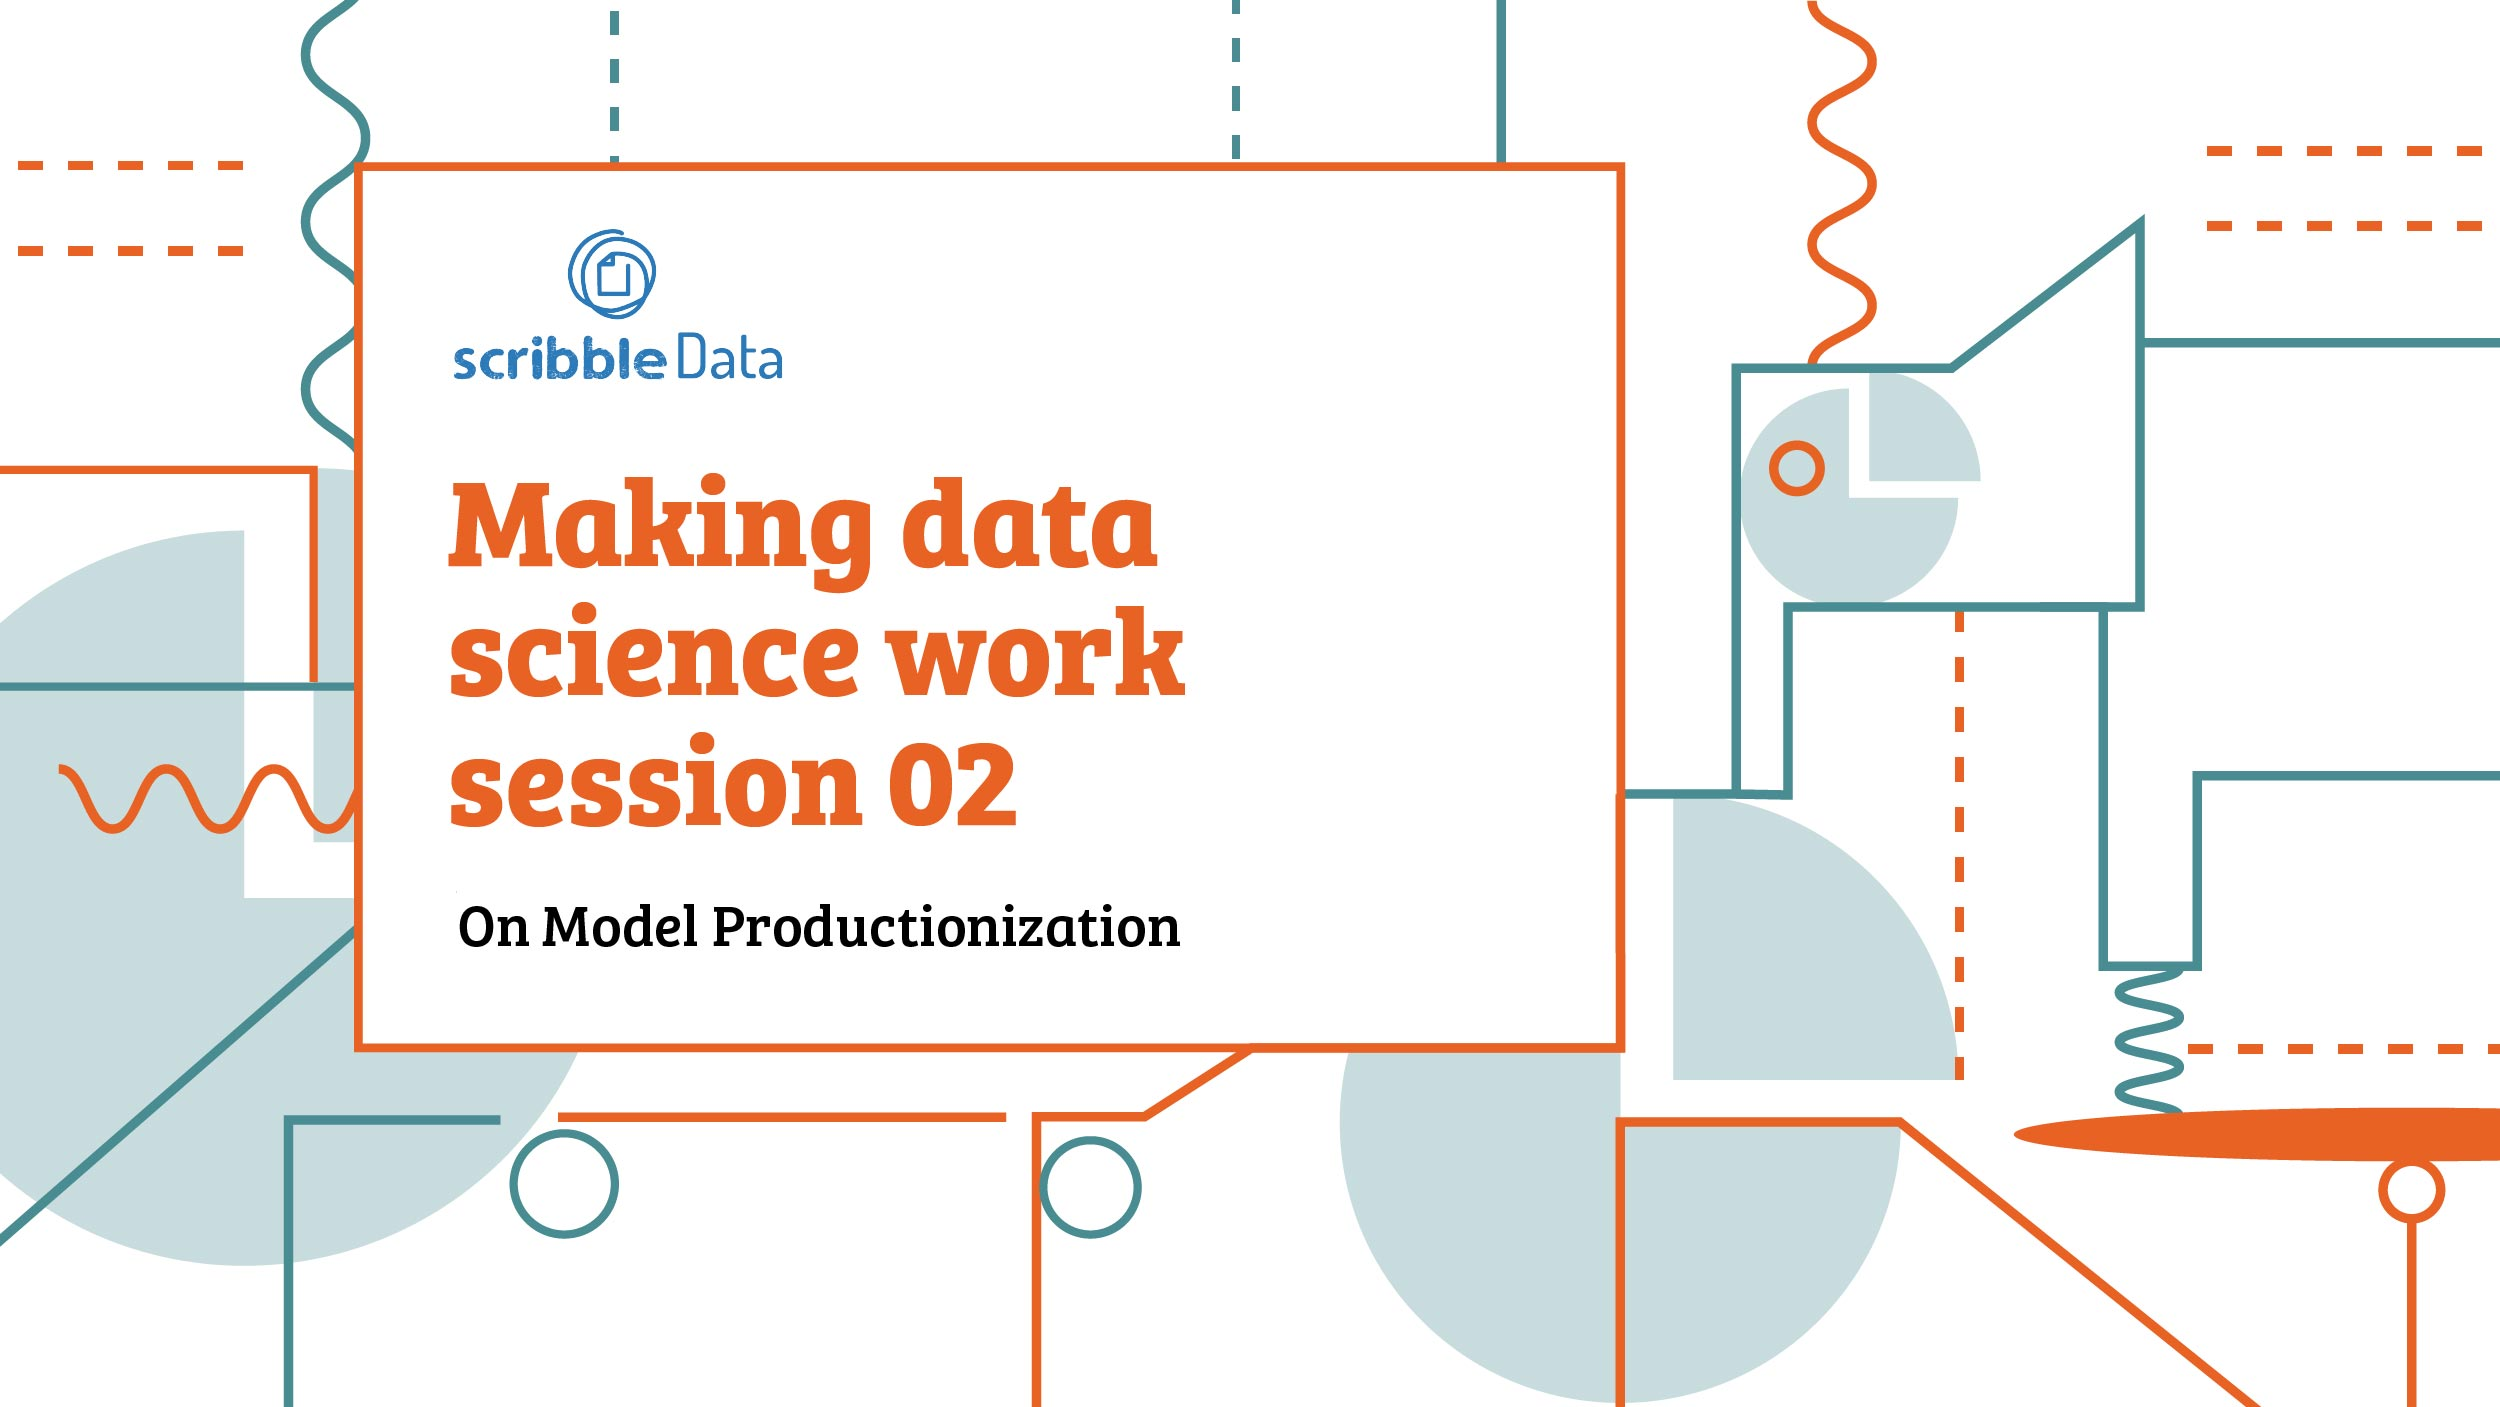 Making Data Science Work session 2